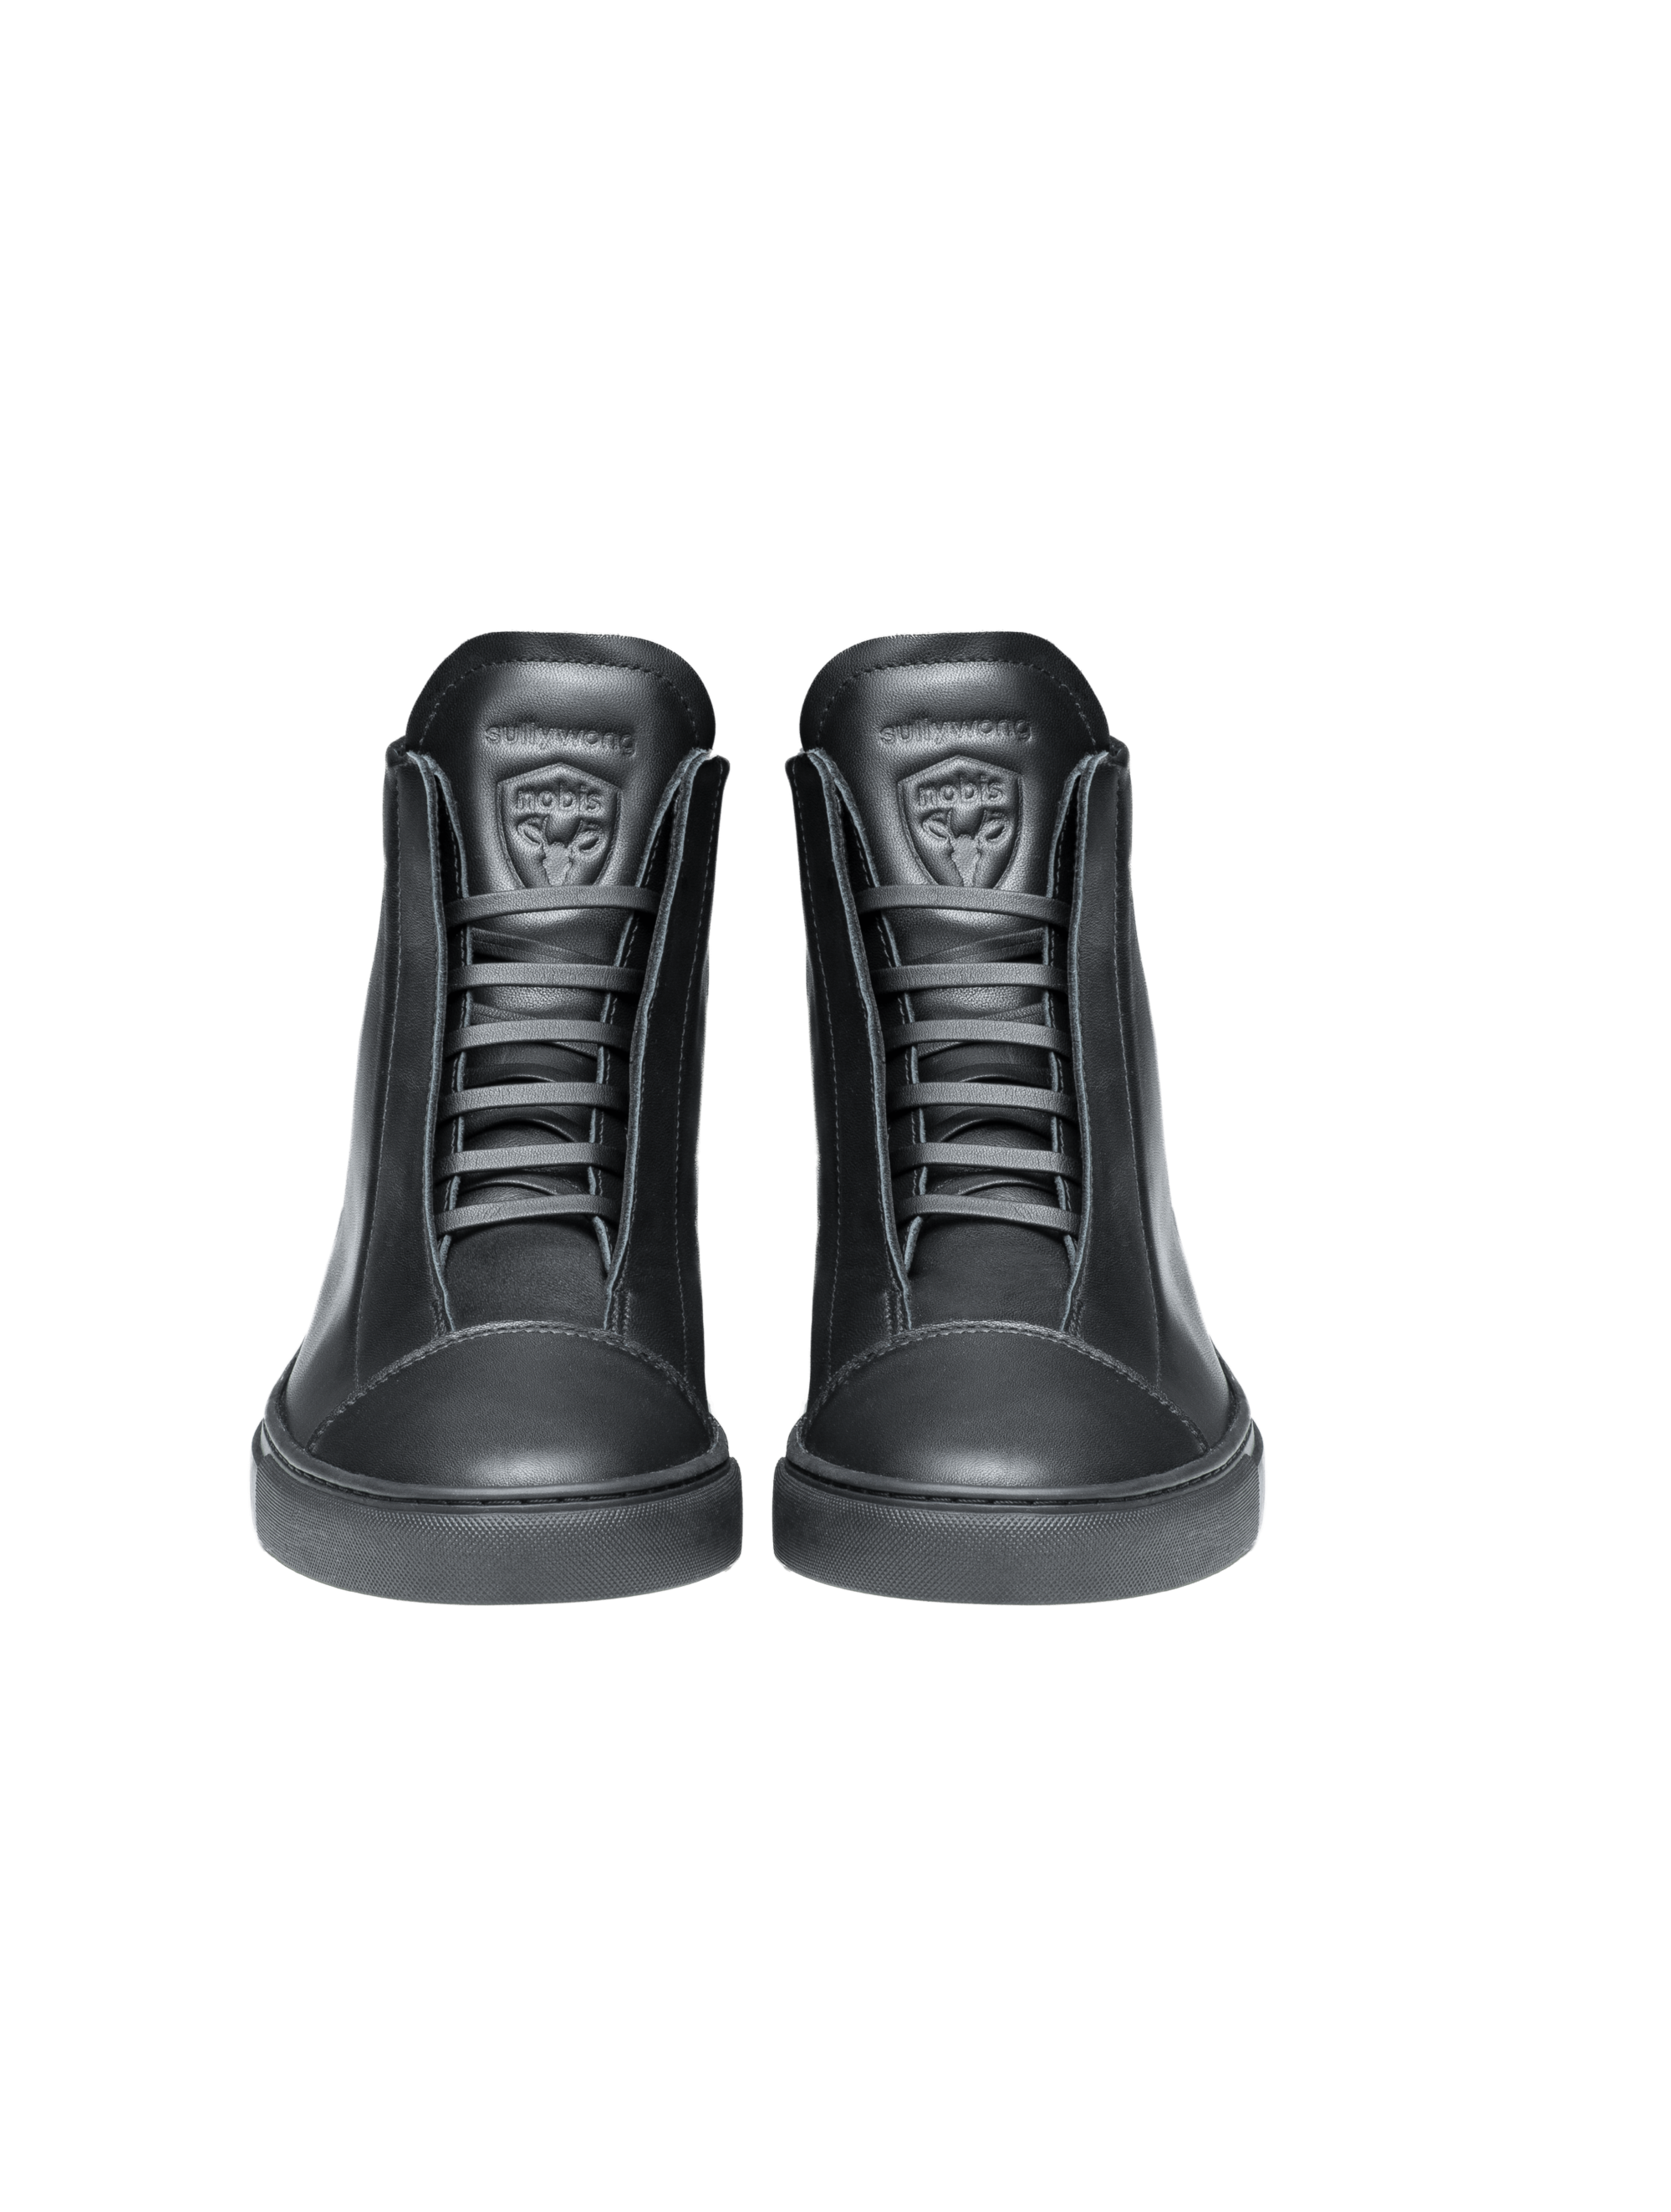 Unisex high top sneaker with Nobis crest embossed on the right side of the shoe in Black | color